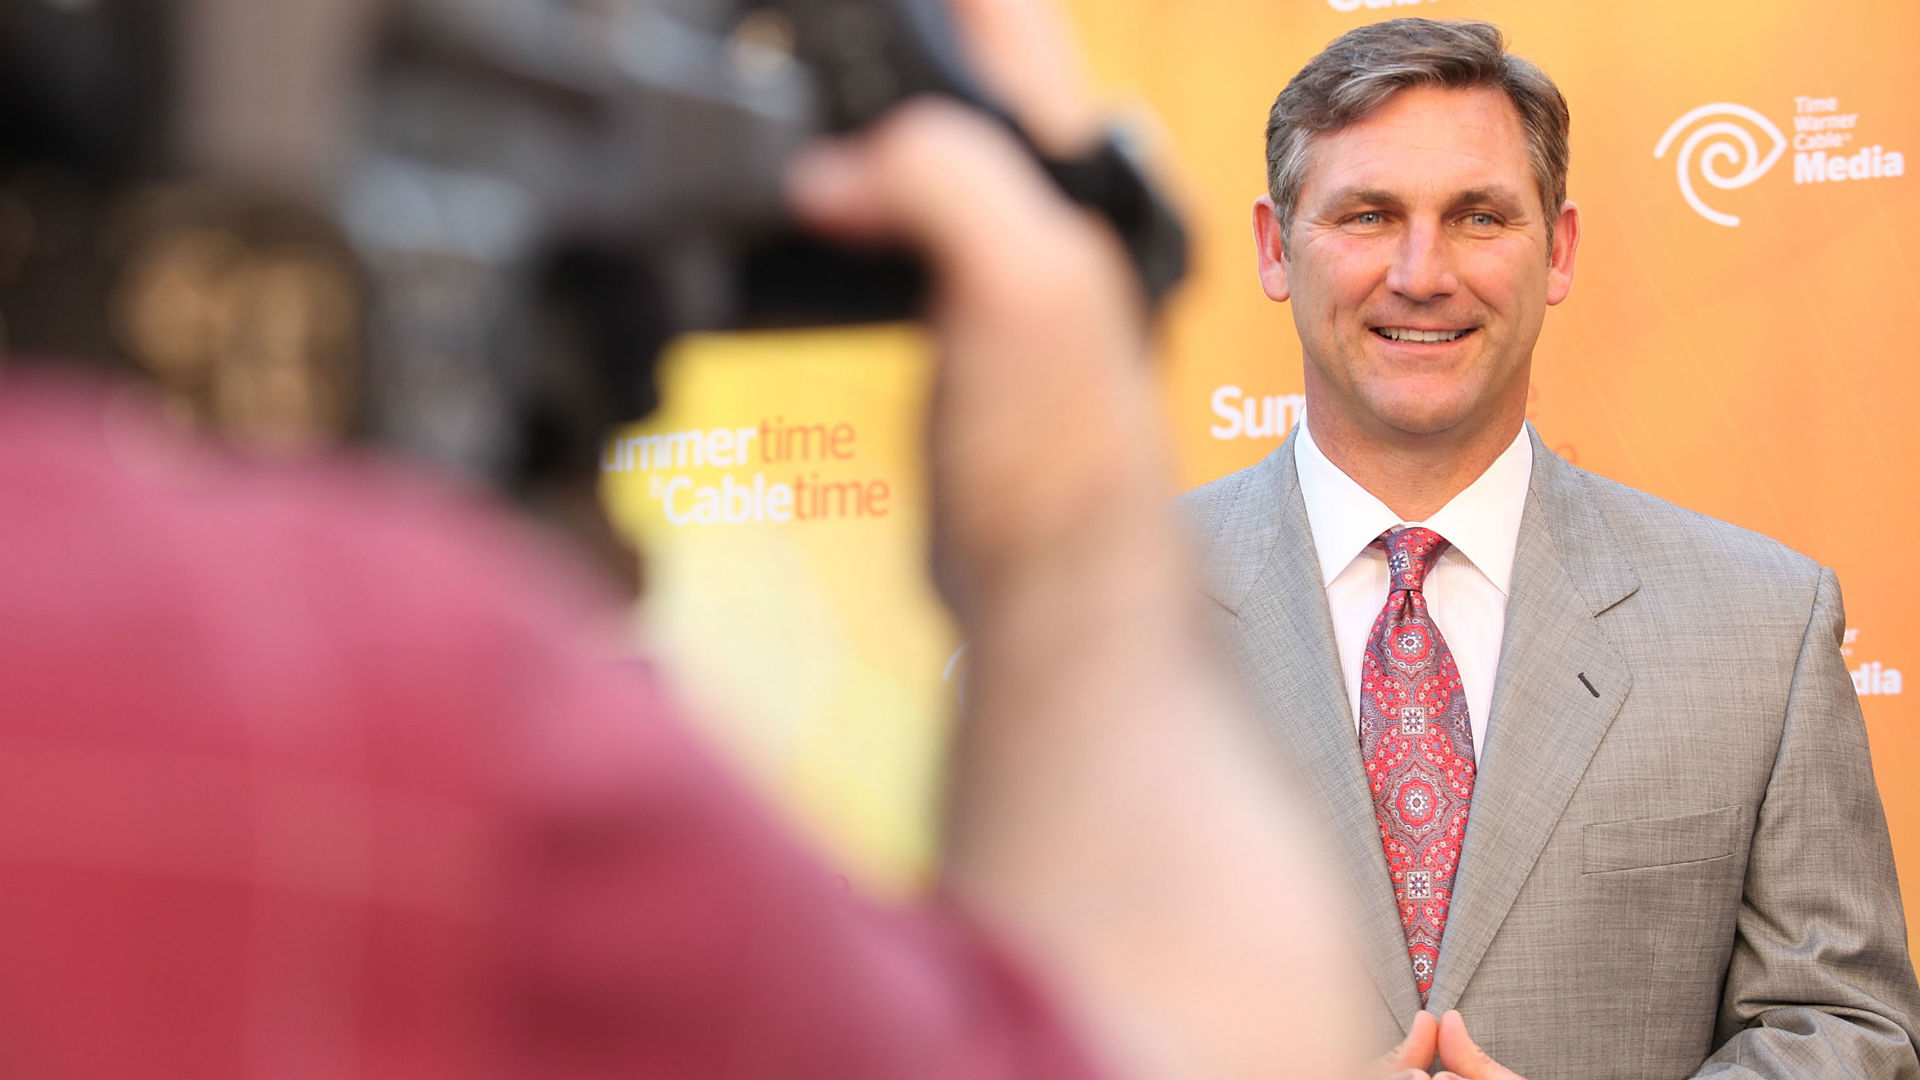 Craig James sues Fox Sports for religious discrimination